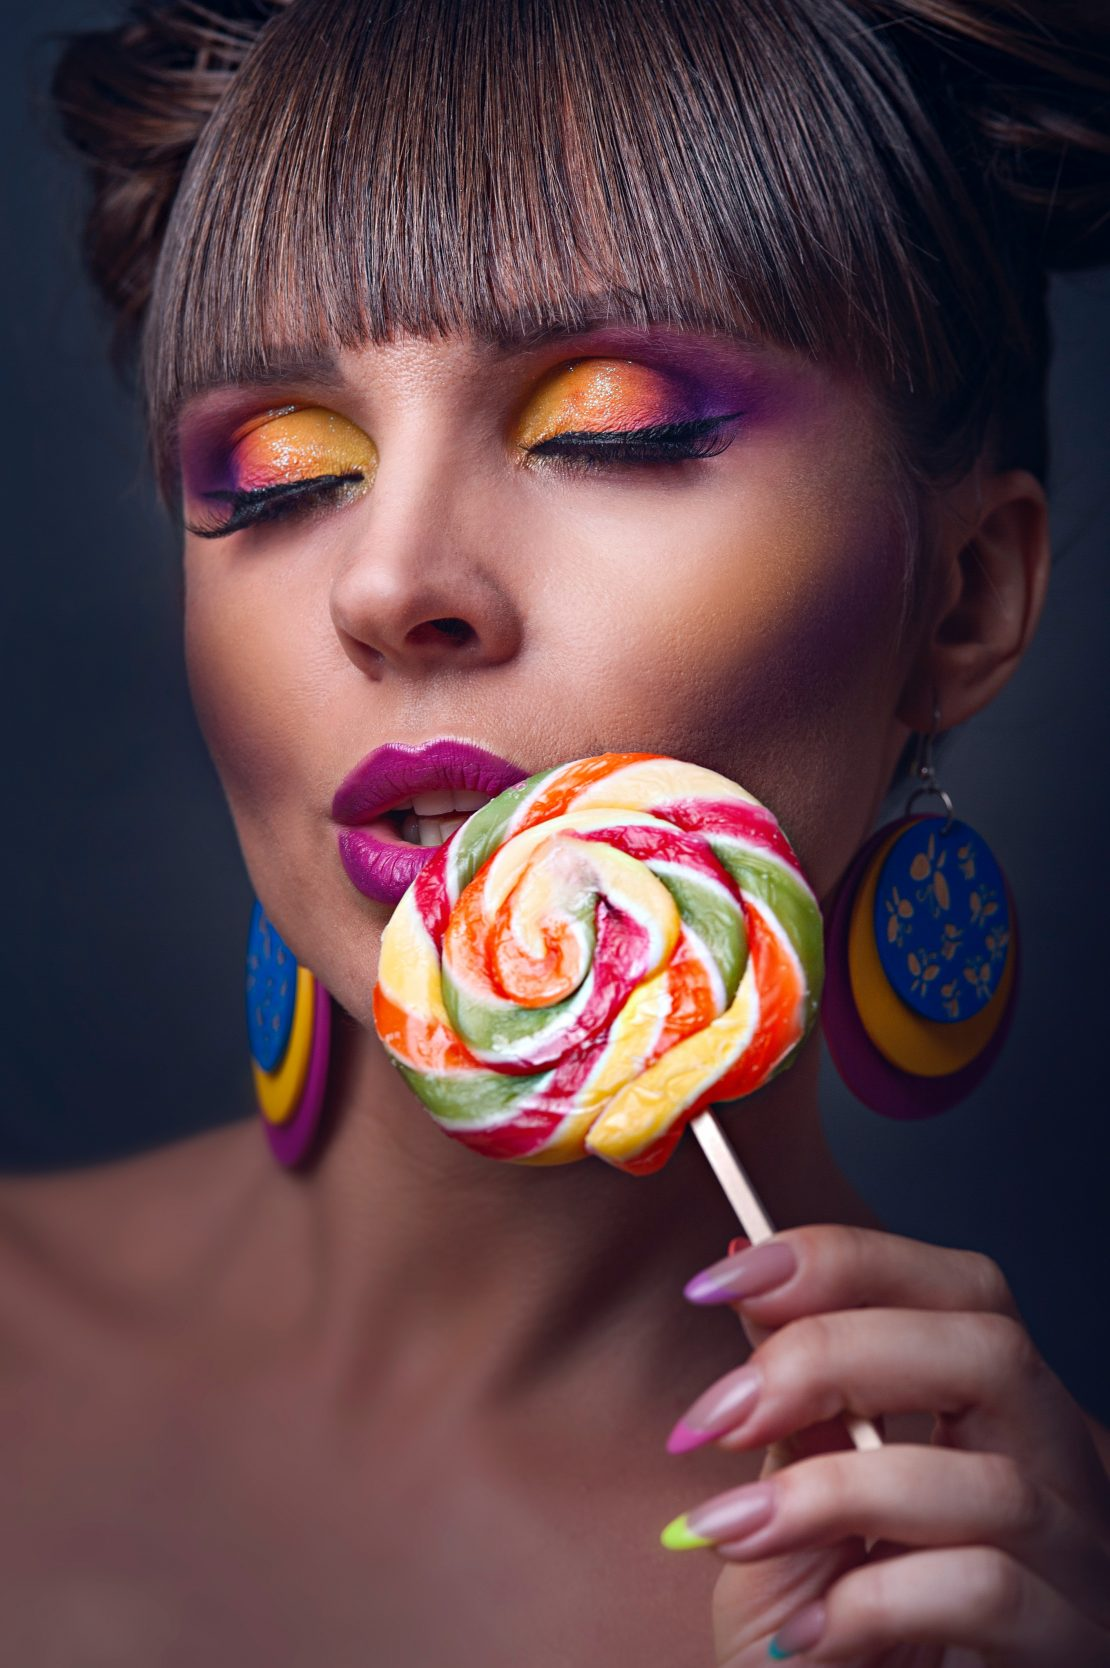 Learn more information about the traits and qualities of successful makeup artists. Contact Health and Style Institute at 1-844-94-STYLE for more information on the makeup artistry program.